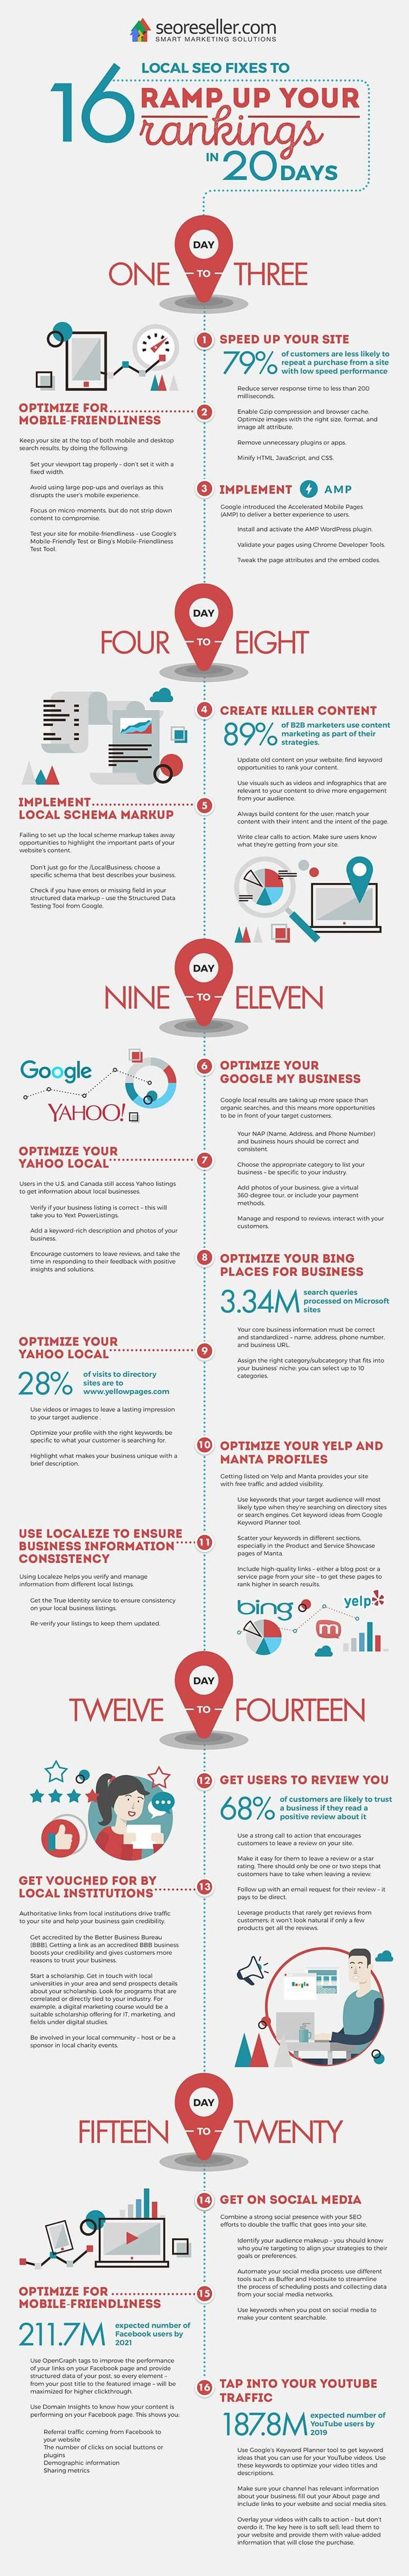 16 Local SEO Fixes to Ramp Up Your Rankings in 20 Days #Infographic #SEO